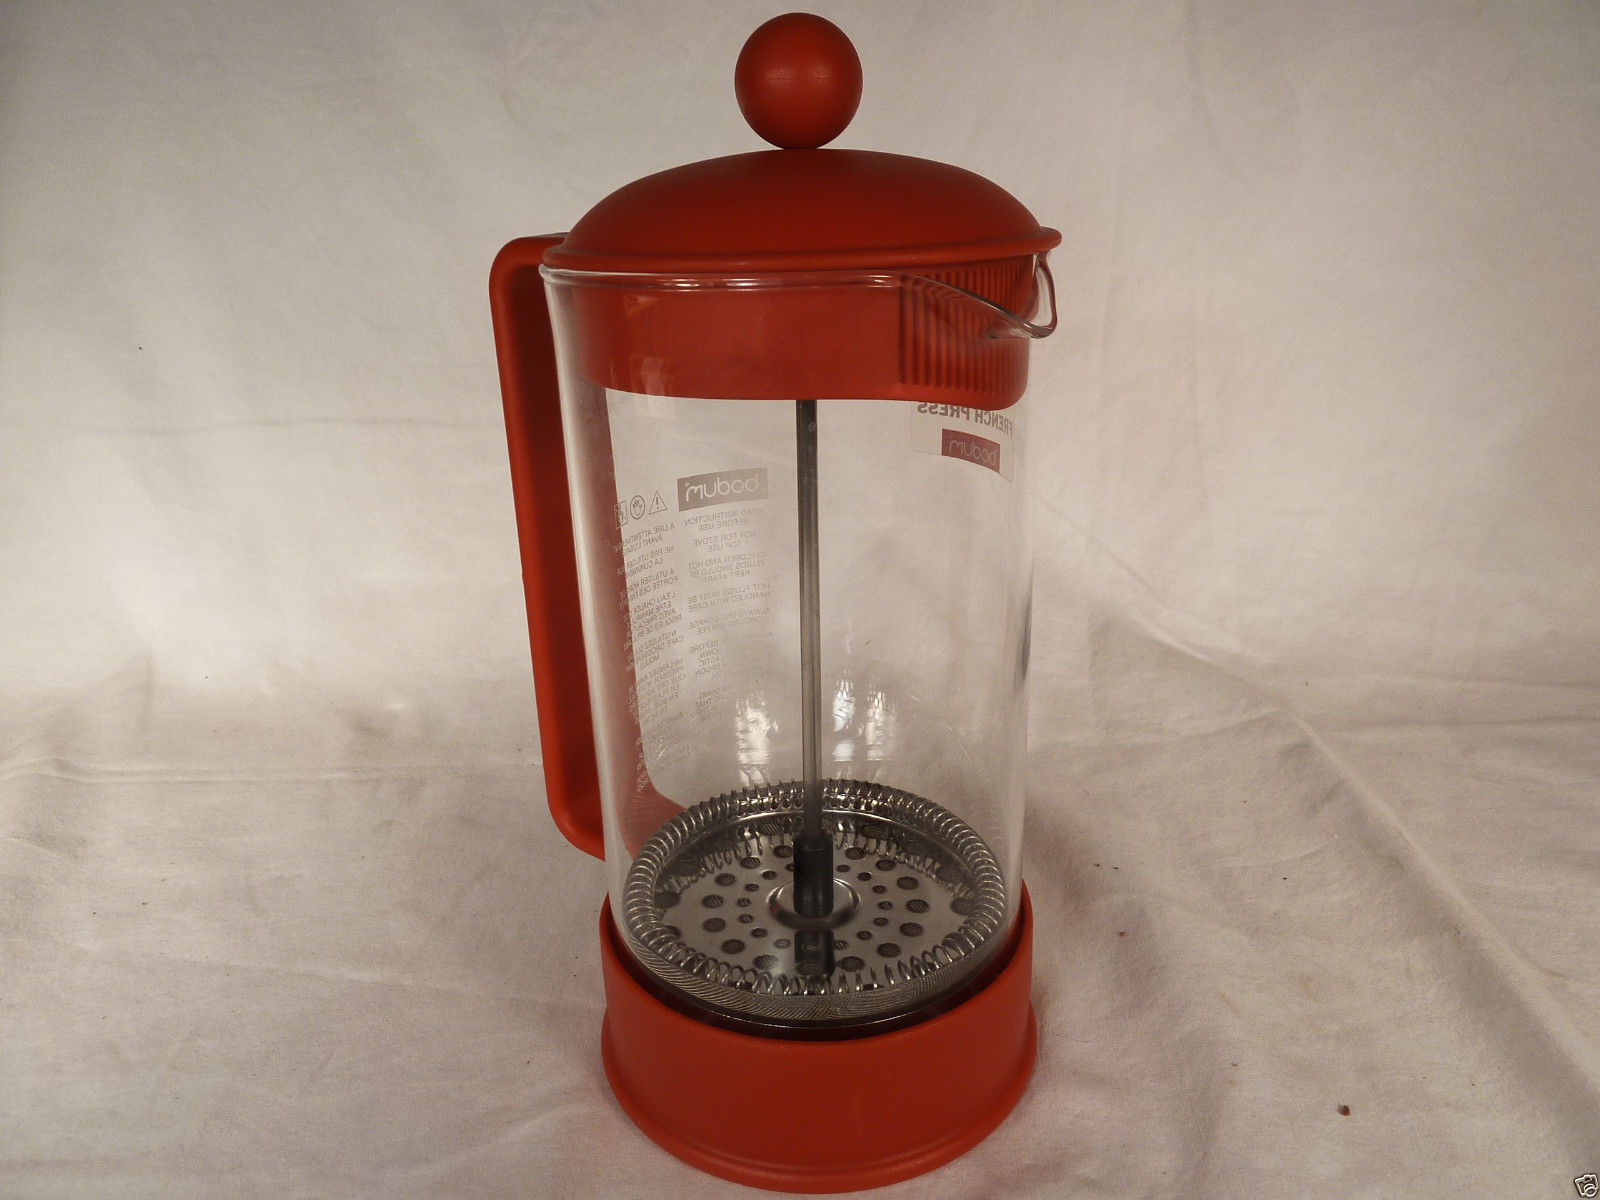 Bodum Tassen Bodum Coffee Maker Brazil French Press 8 Cup And 50 Similar Items